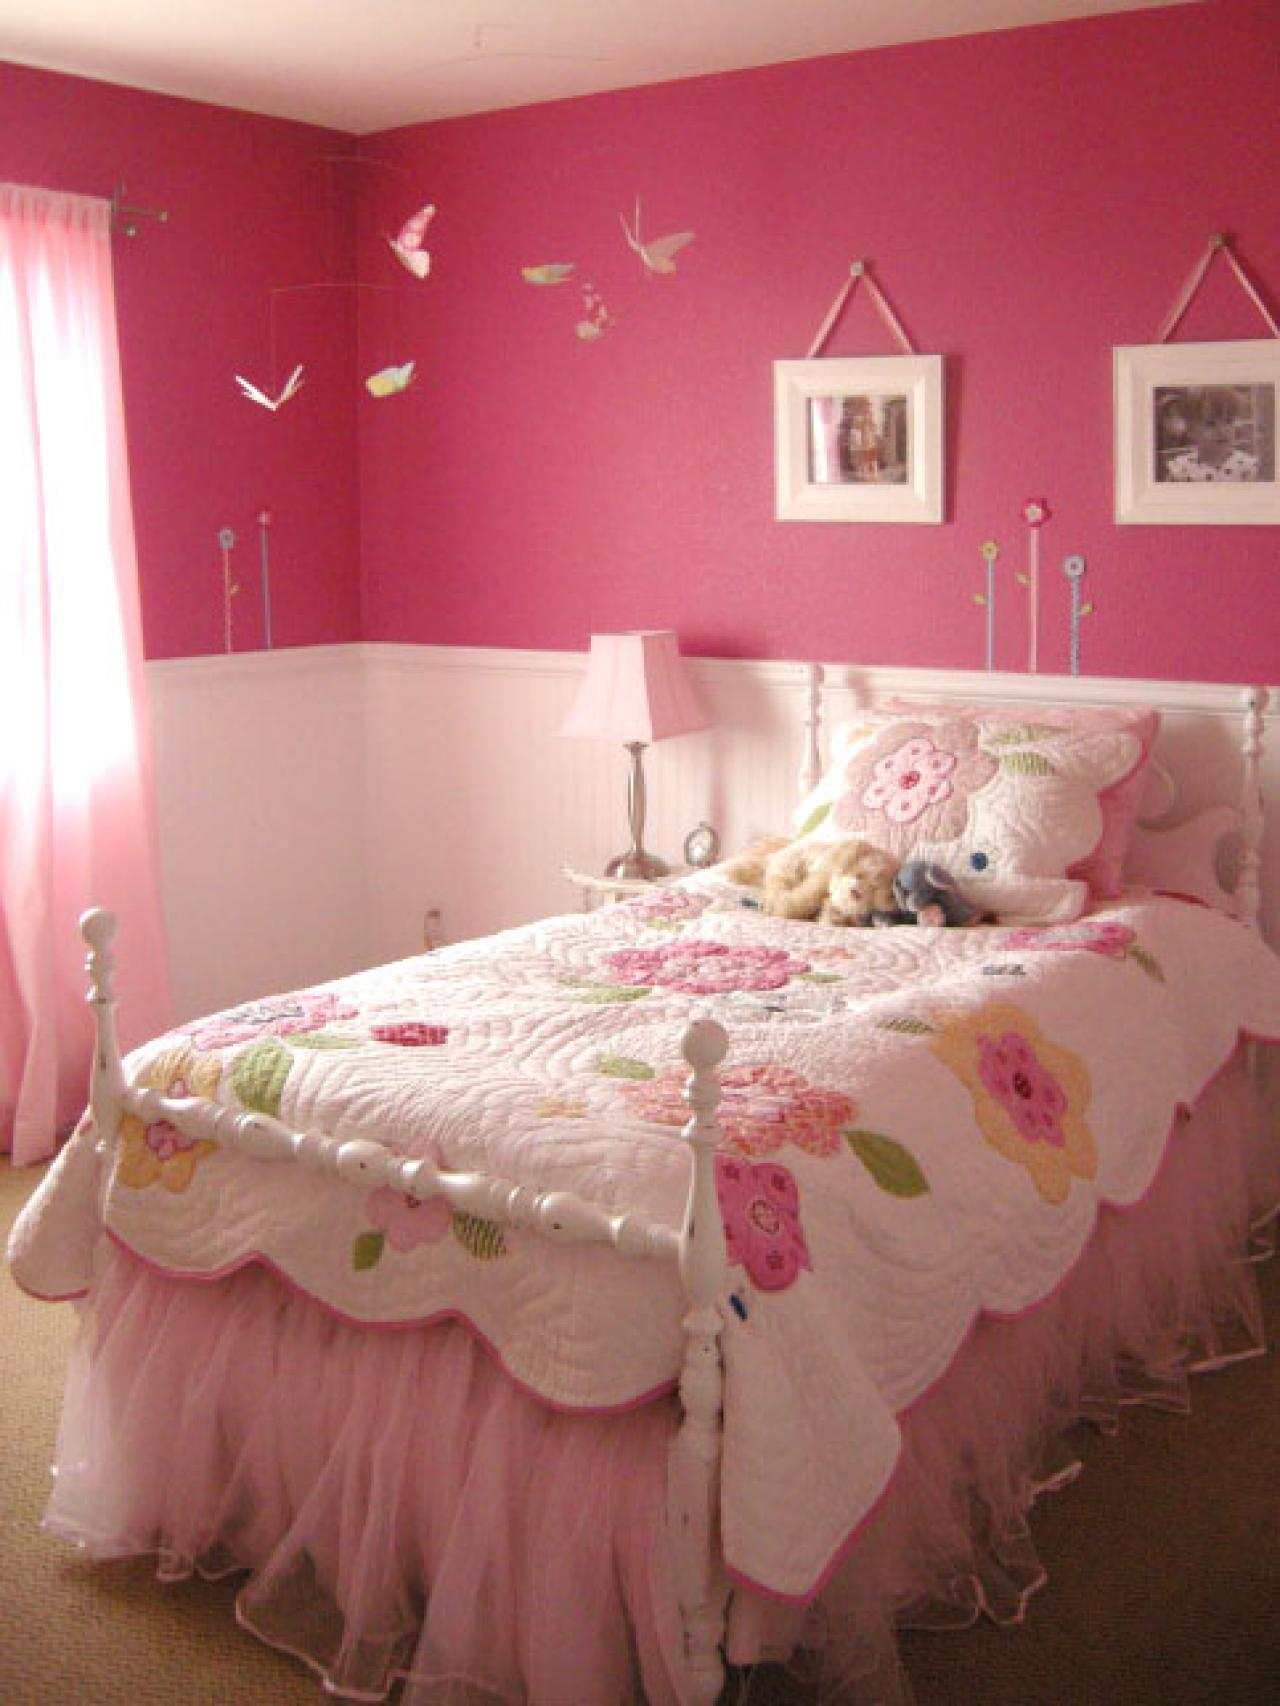 Pink Color Combinations Kid S Bedroom Pastel Bedcover Pillows Light Wall Pictures